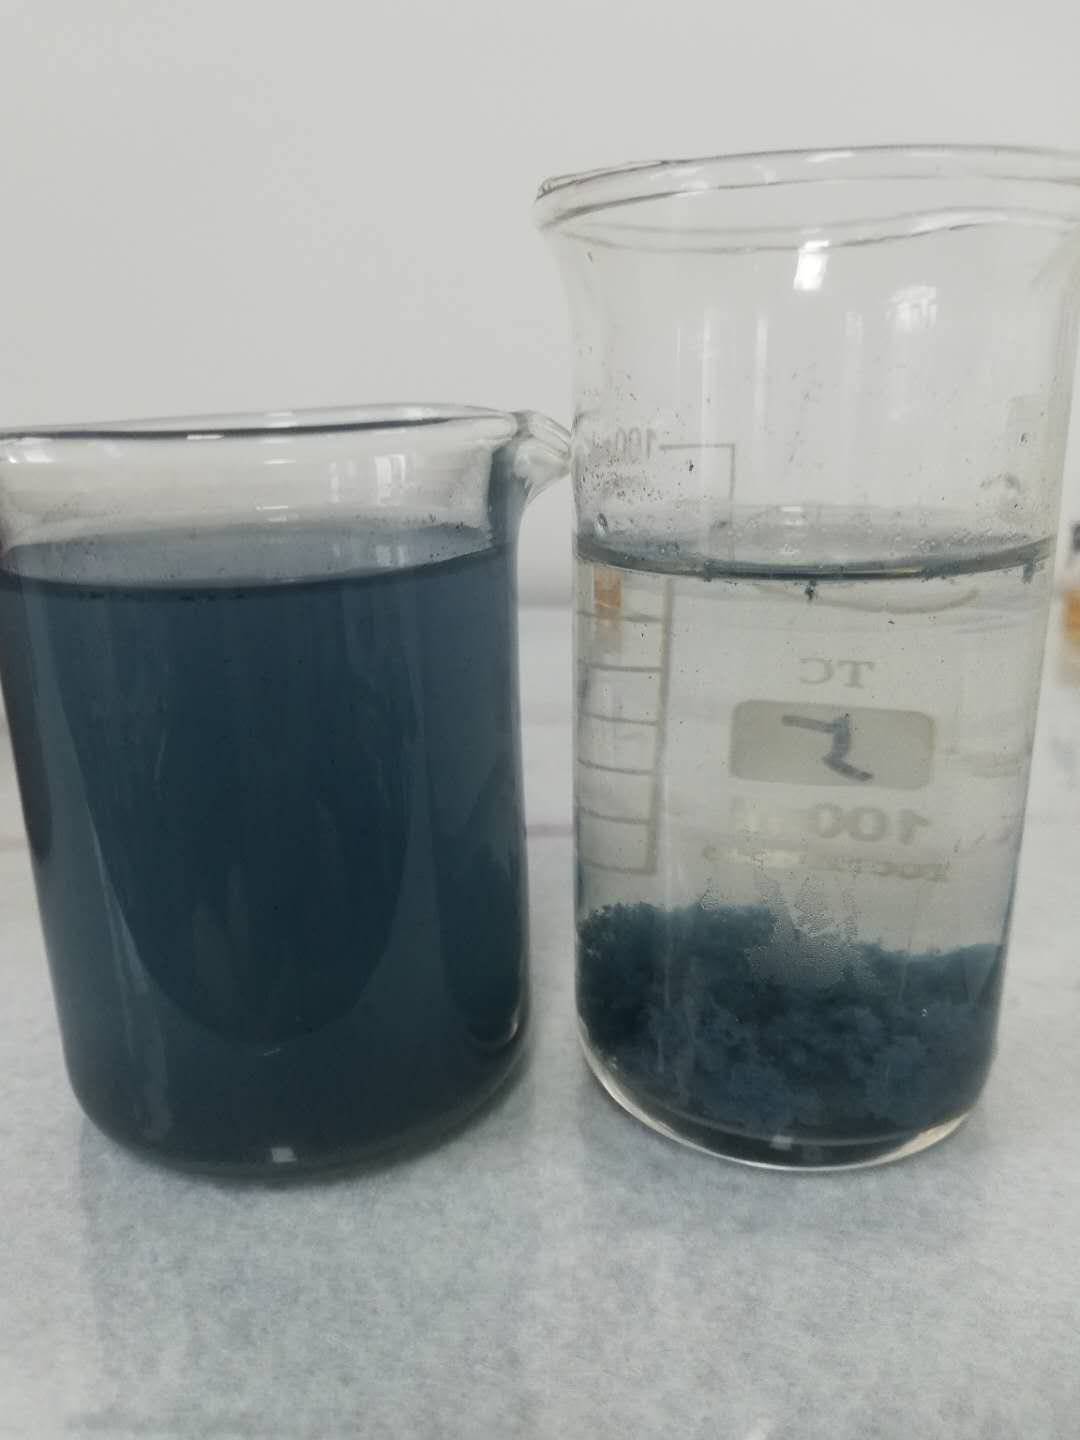 Decolorization effect of dyeing wastewater treatment